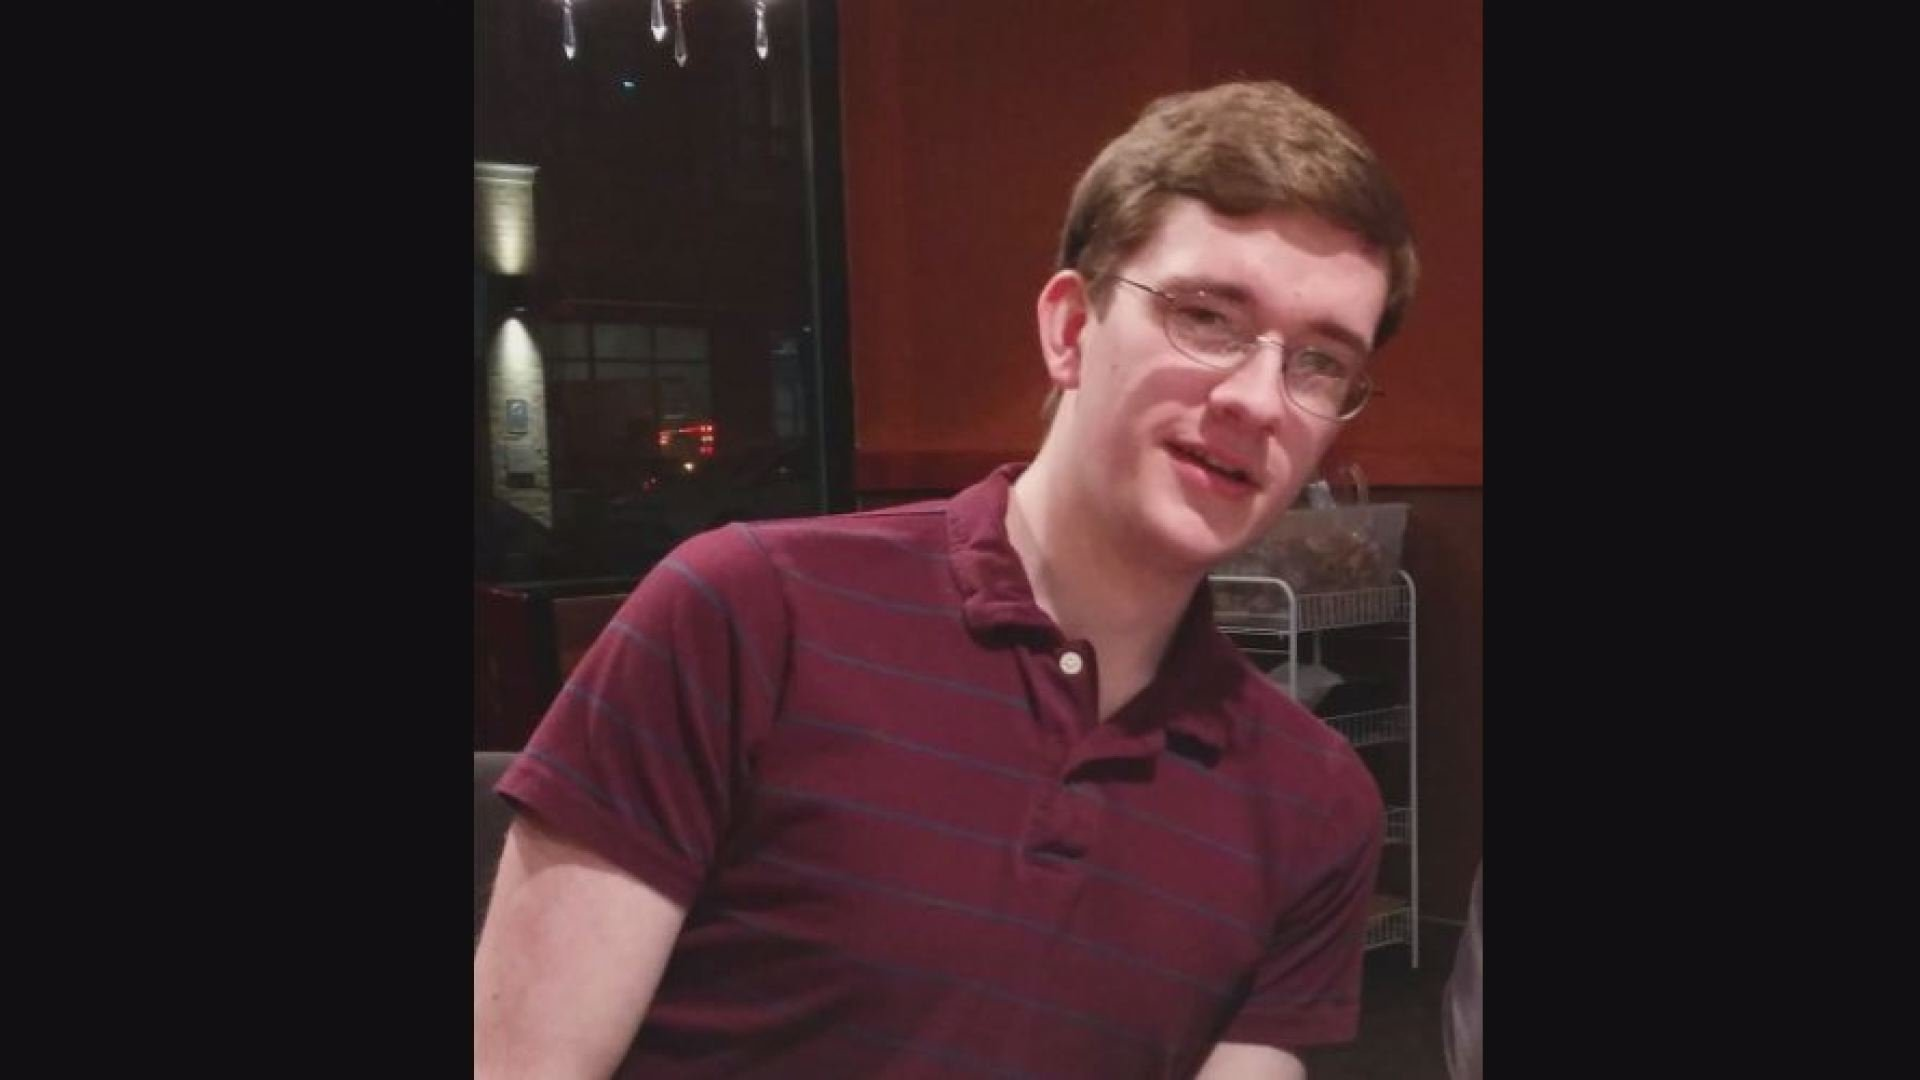 U of M Police asking for public's help in finding missing student